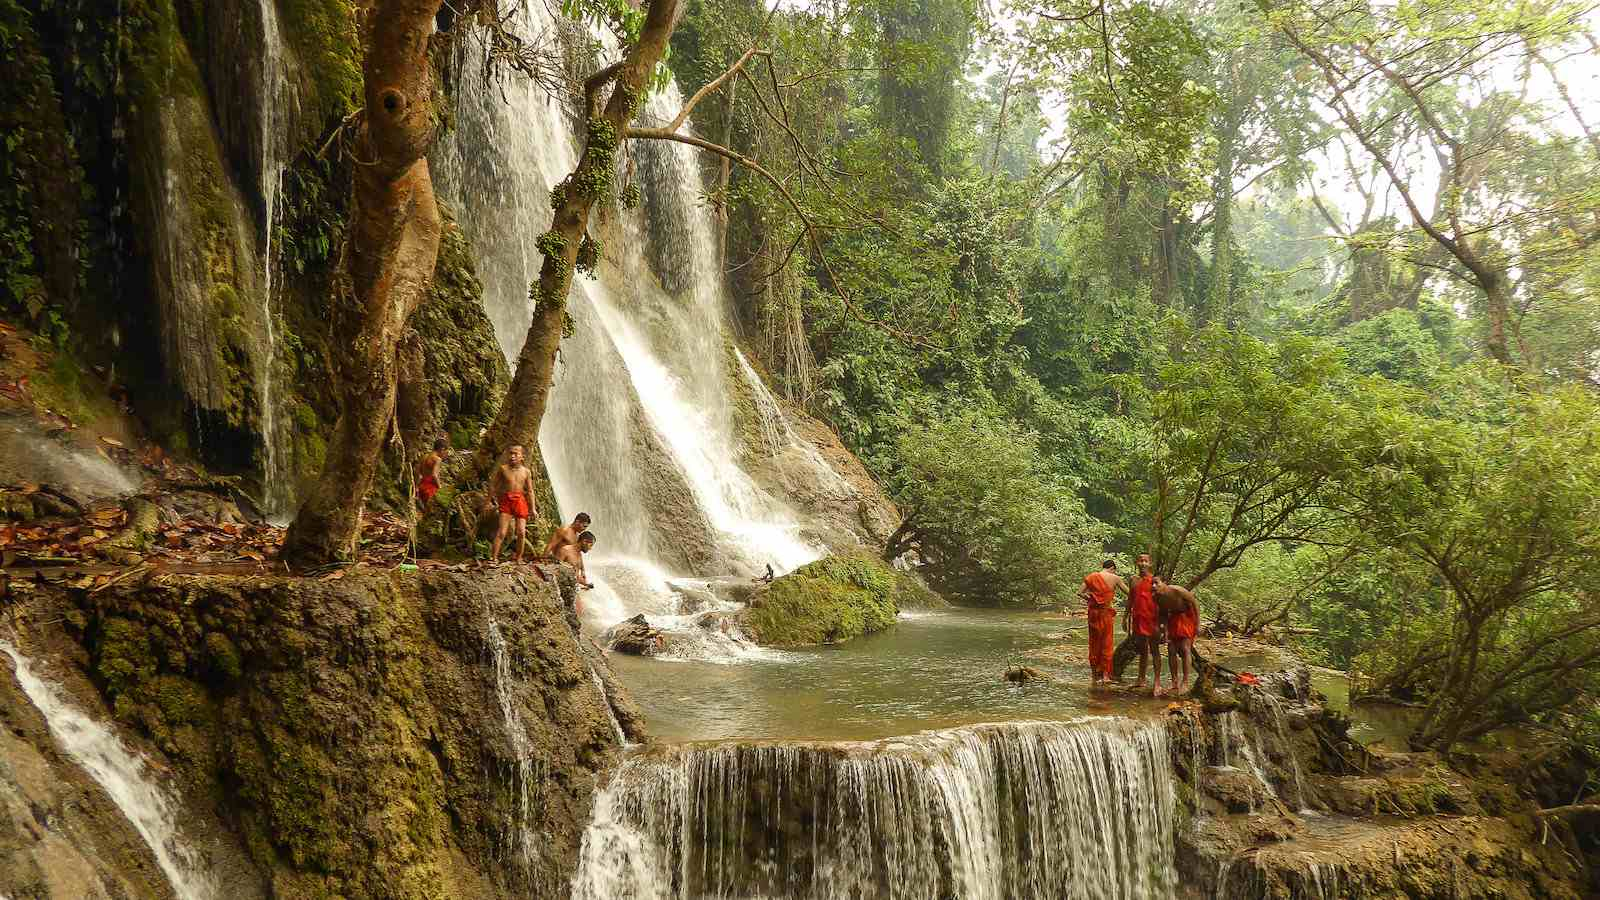 the Kuang Si Falls in Laos is a gorgeous tiered waterfall you need to visit while in the country